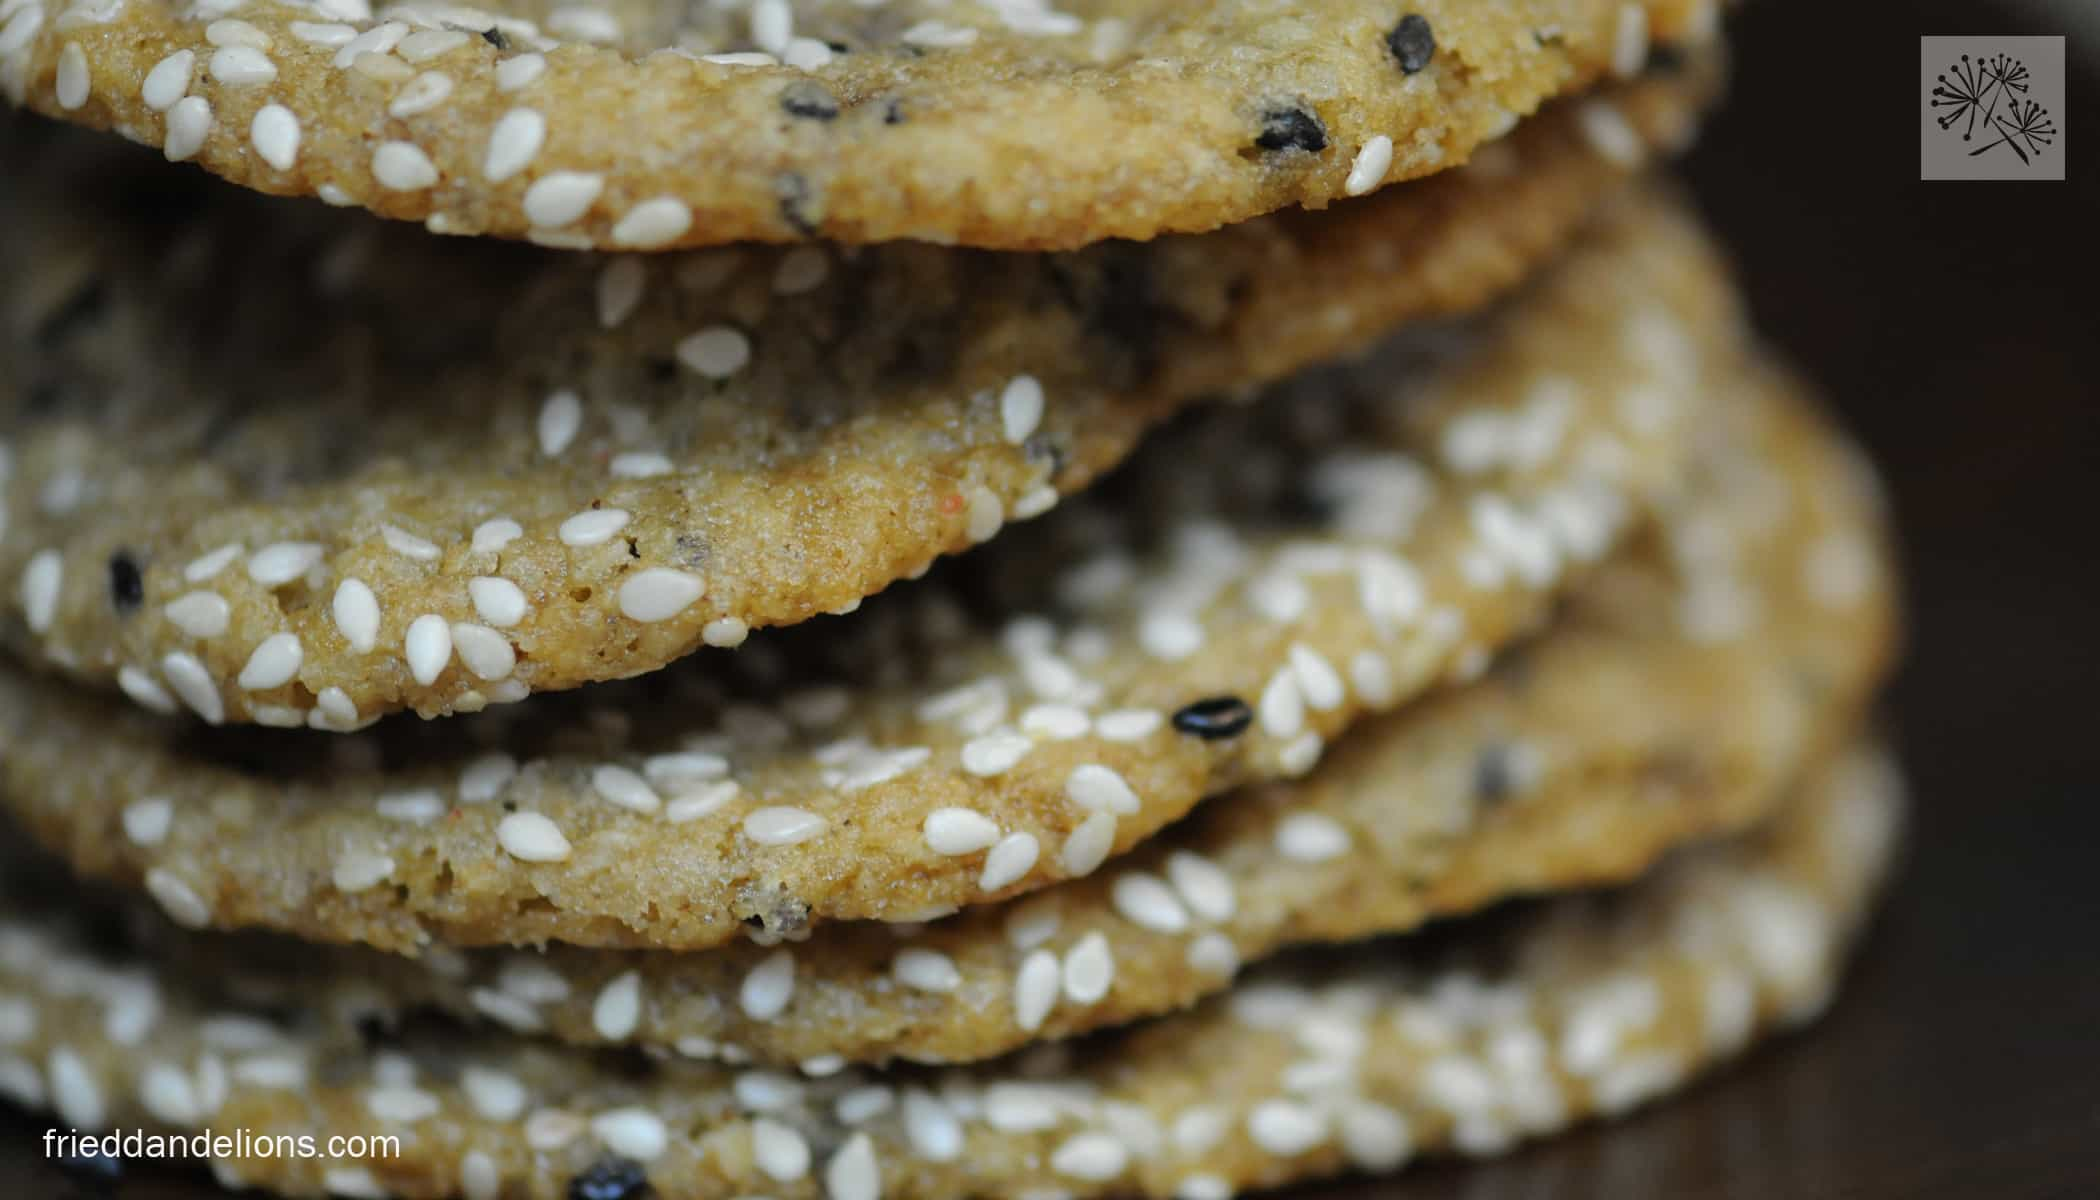 Salted Sesame Cookies with Dark Chocolate Chips - Fried Dandelions